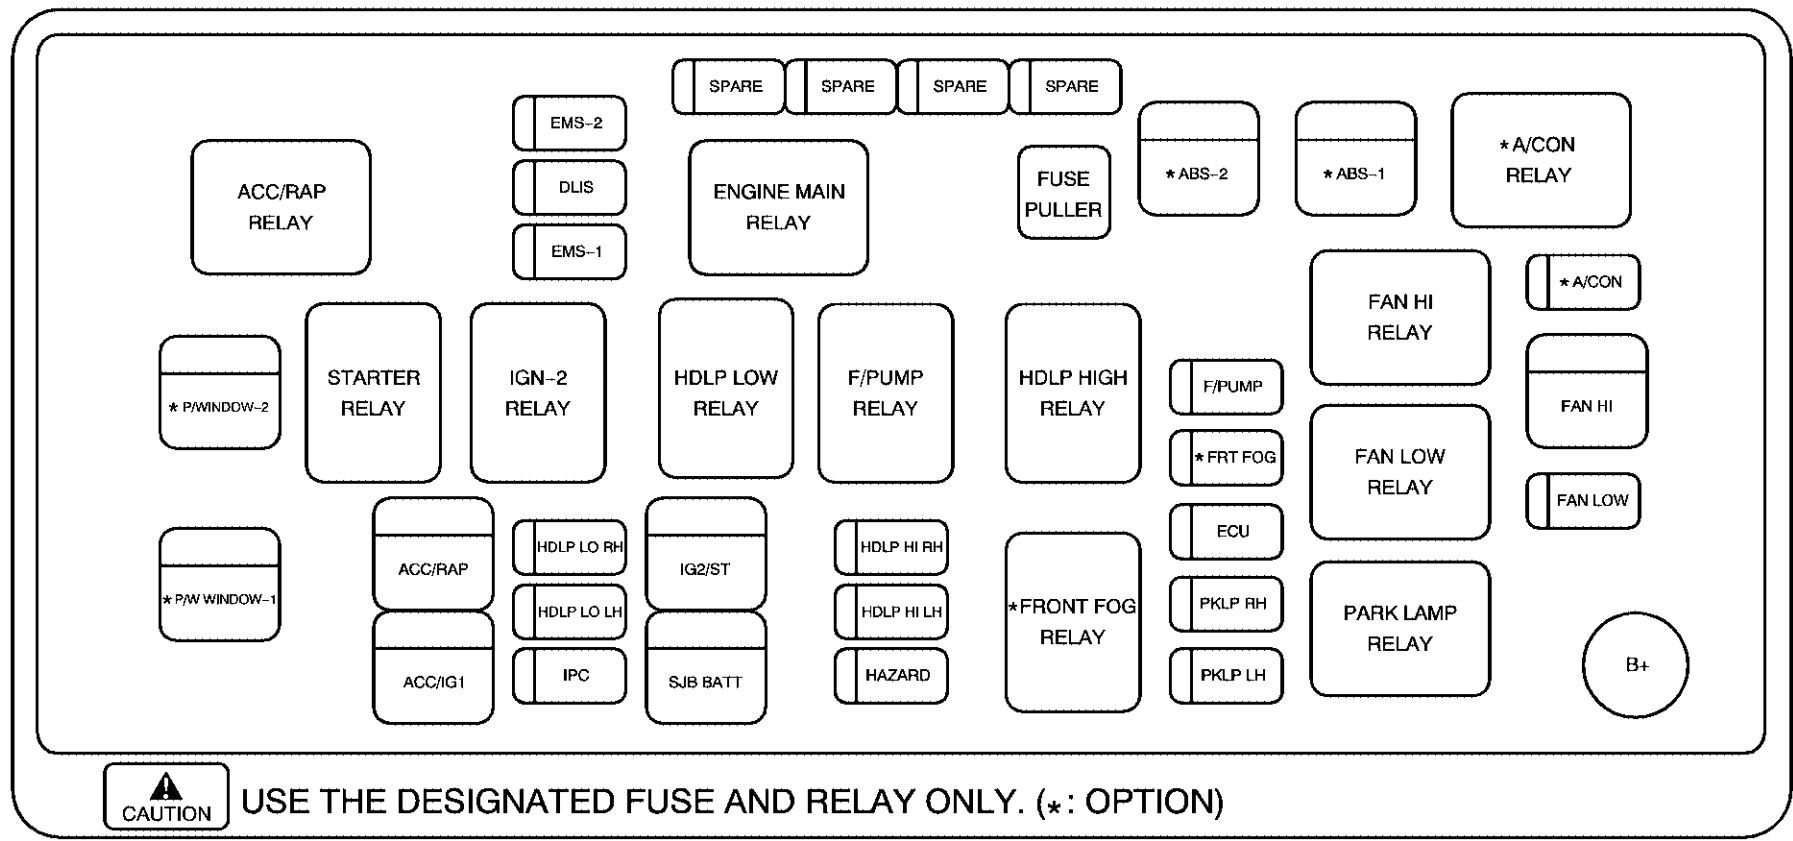 06 Chevy Aveo Fuse Box Wiring Diagrams 2006 F150 Location Diagram Library